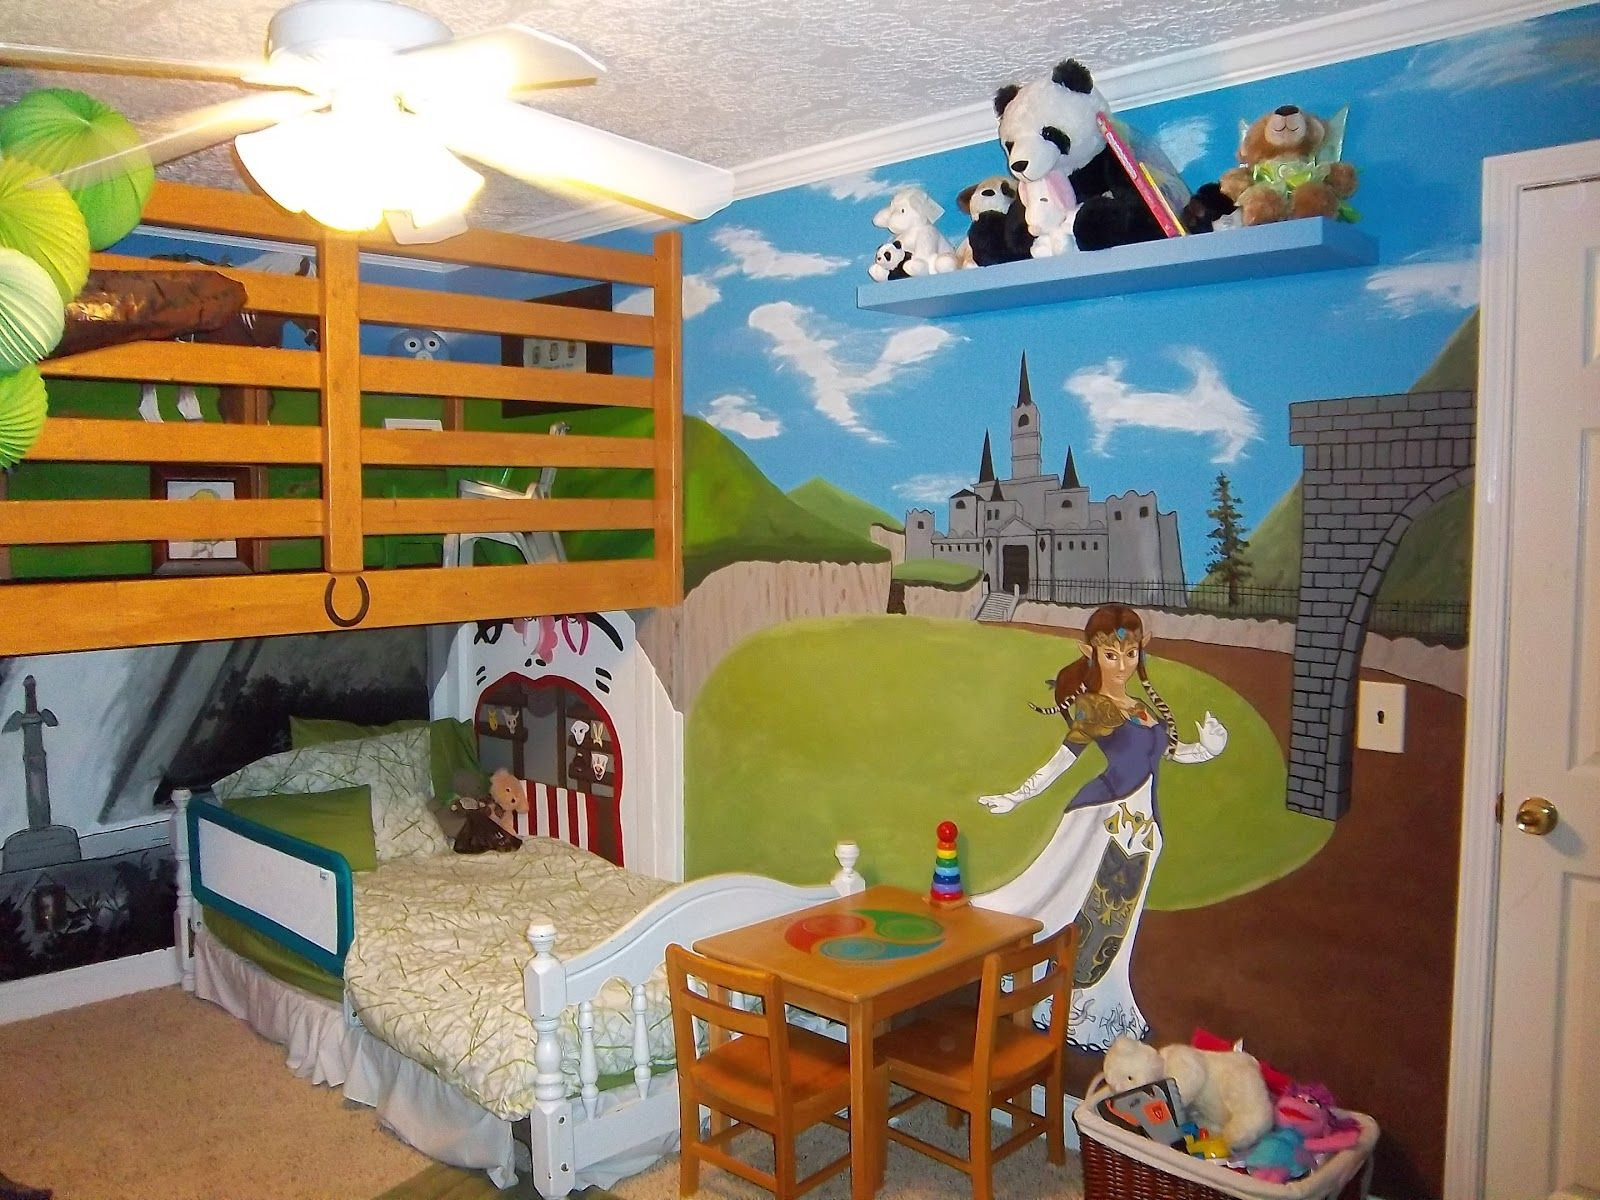 When Gamers Decorate: 19 Awesome Video Game Rooms  Mental Floss